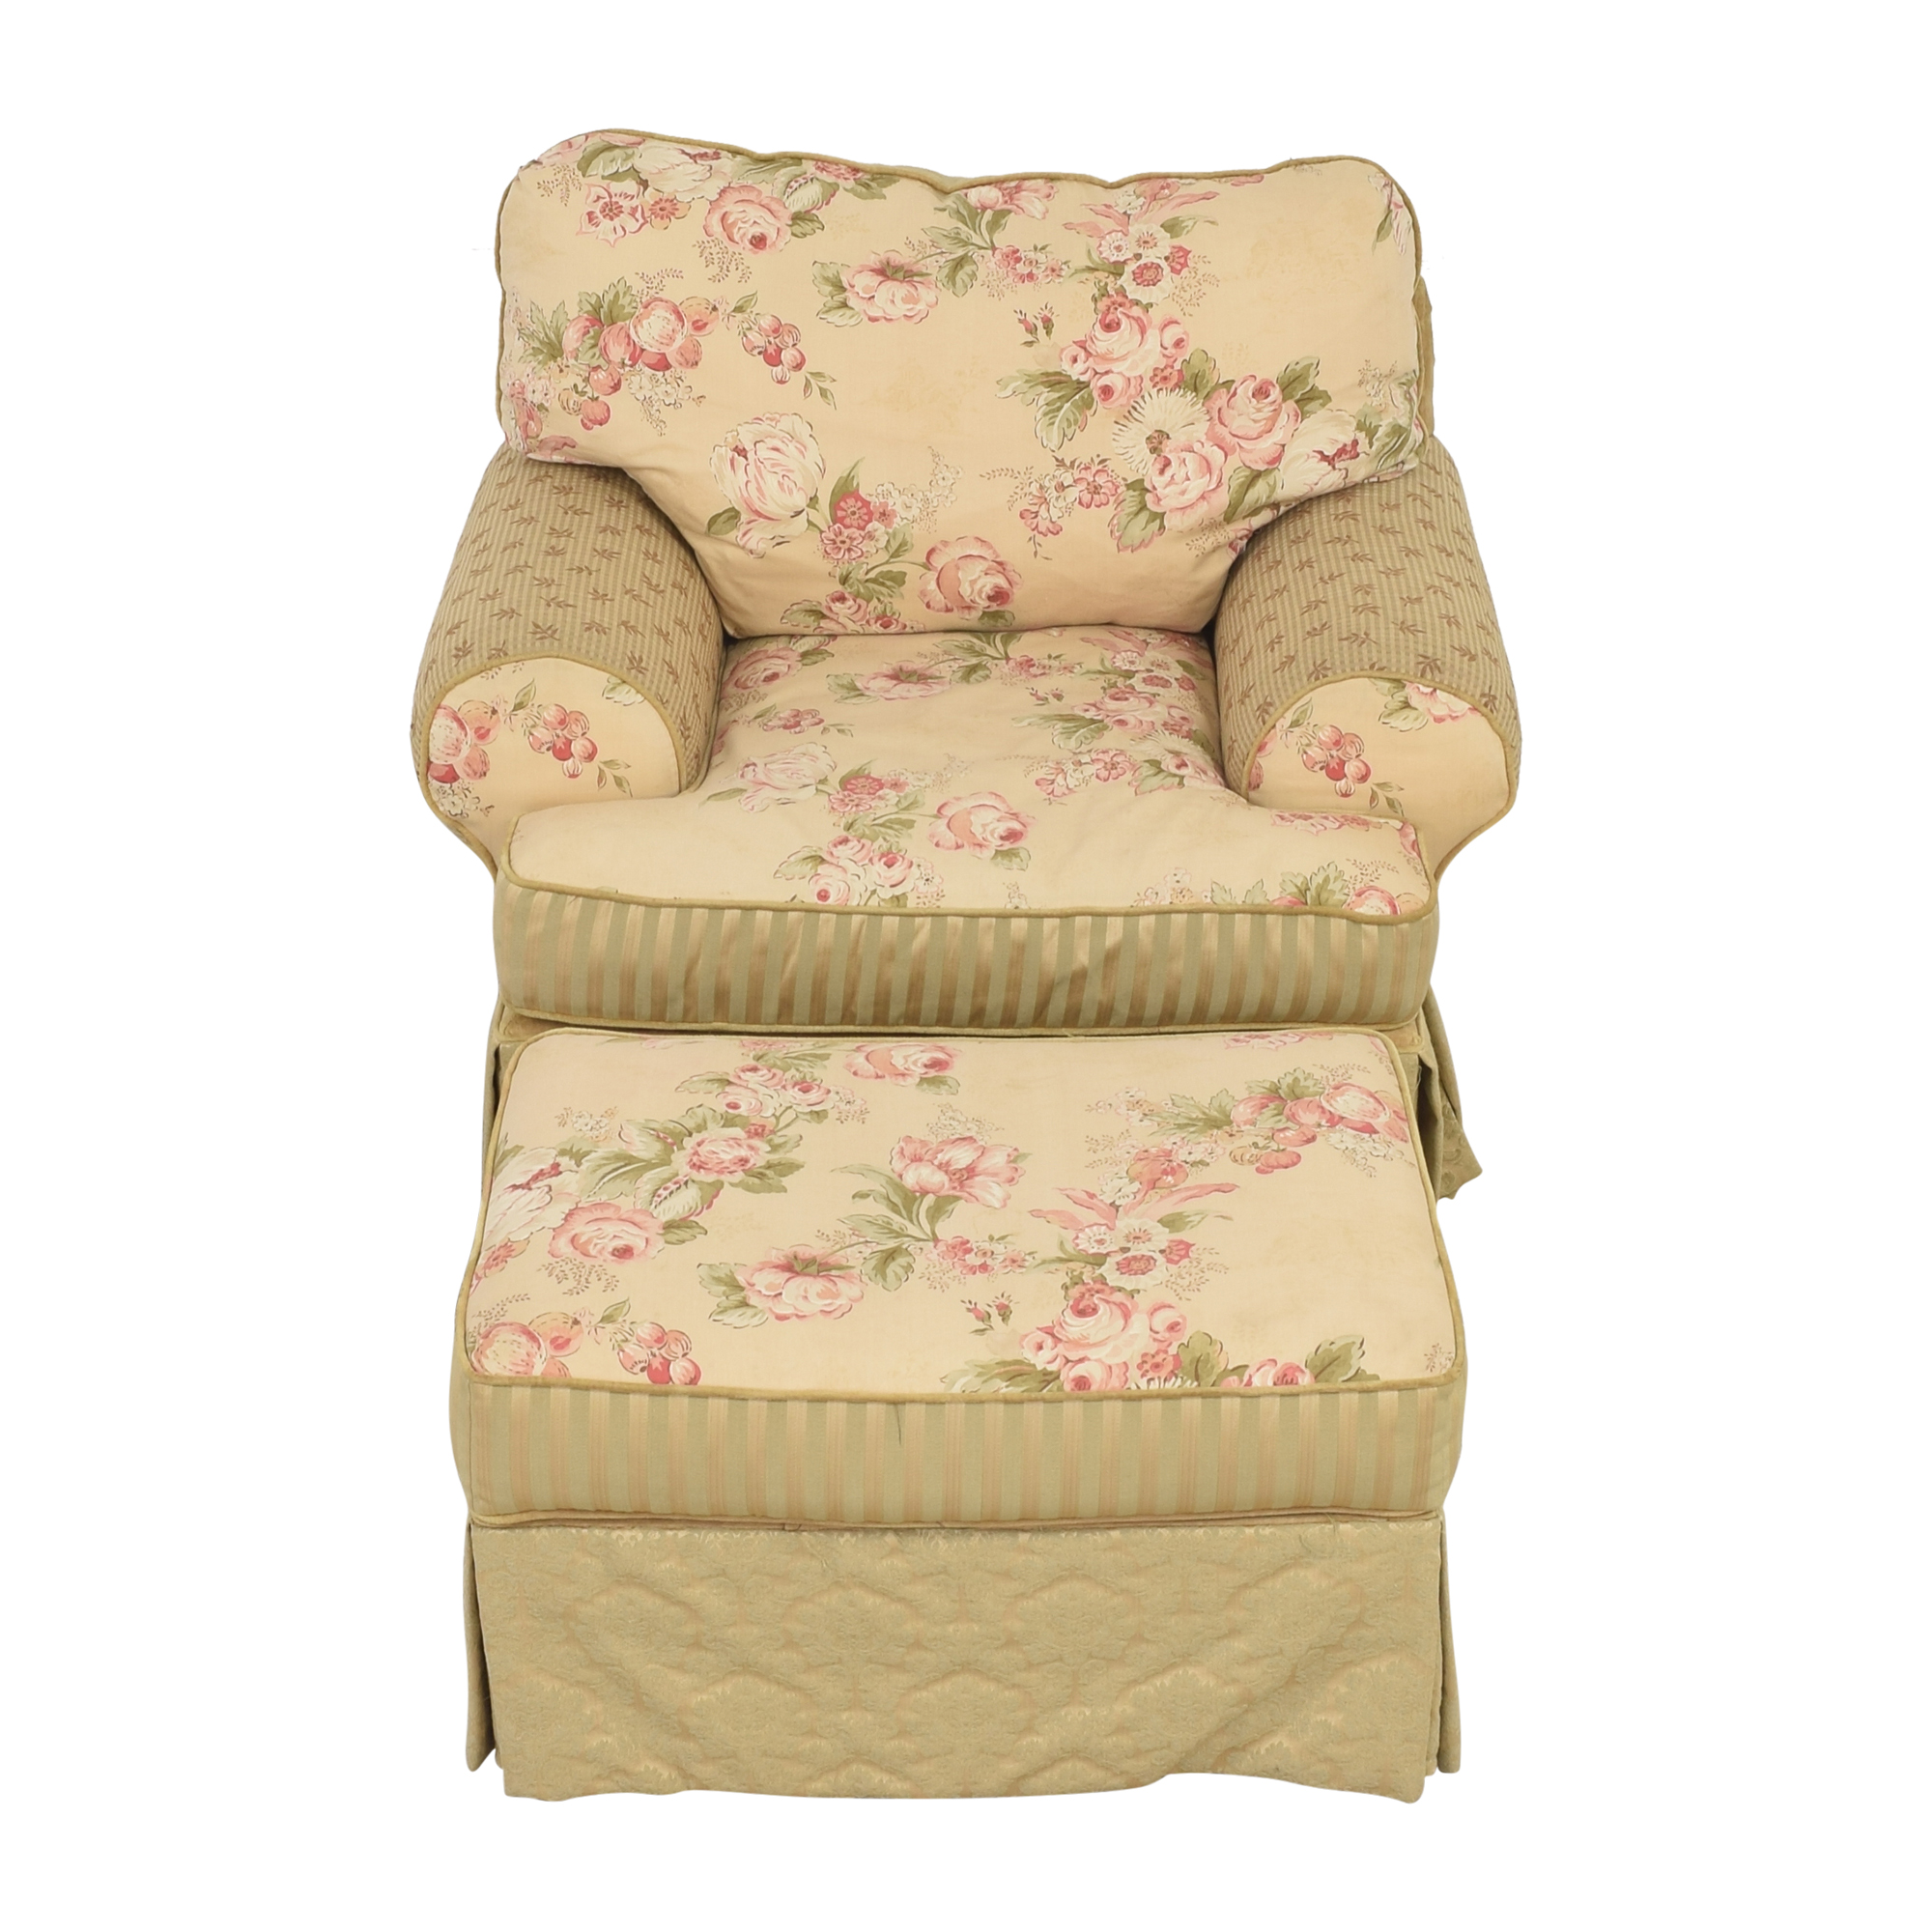 Domain Home Domain Home Floral and Stripe Accent Chair with Ottoman on sale